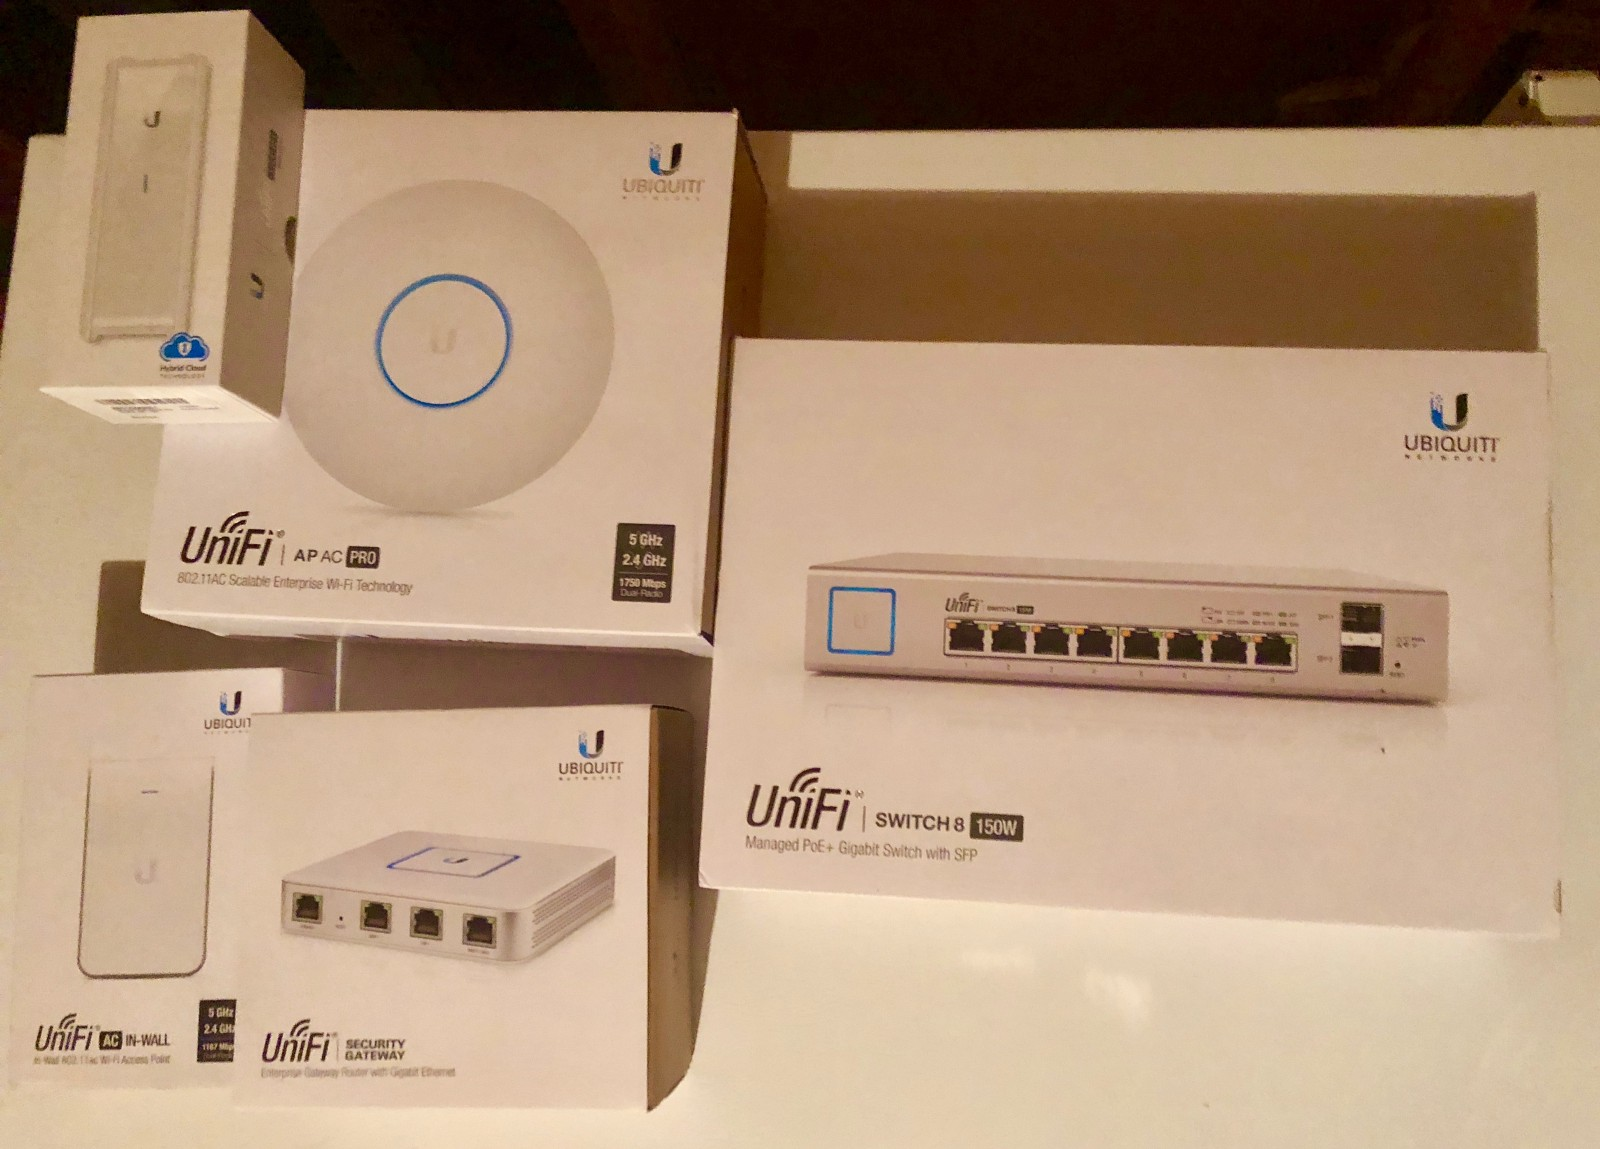 Ubiquiti Unifi Setup At Home Impressions From A Non Pro Electrical Wiring Basement Canada For Users Whom Solid Wi Fi Internet Connection Is Important Or Challenge Telecommuters Owners Of Larger Homes People Who Have Growing Number